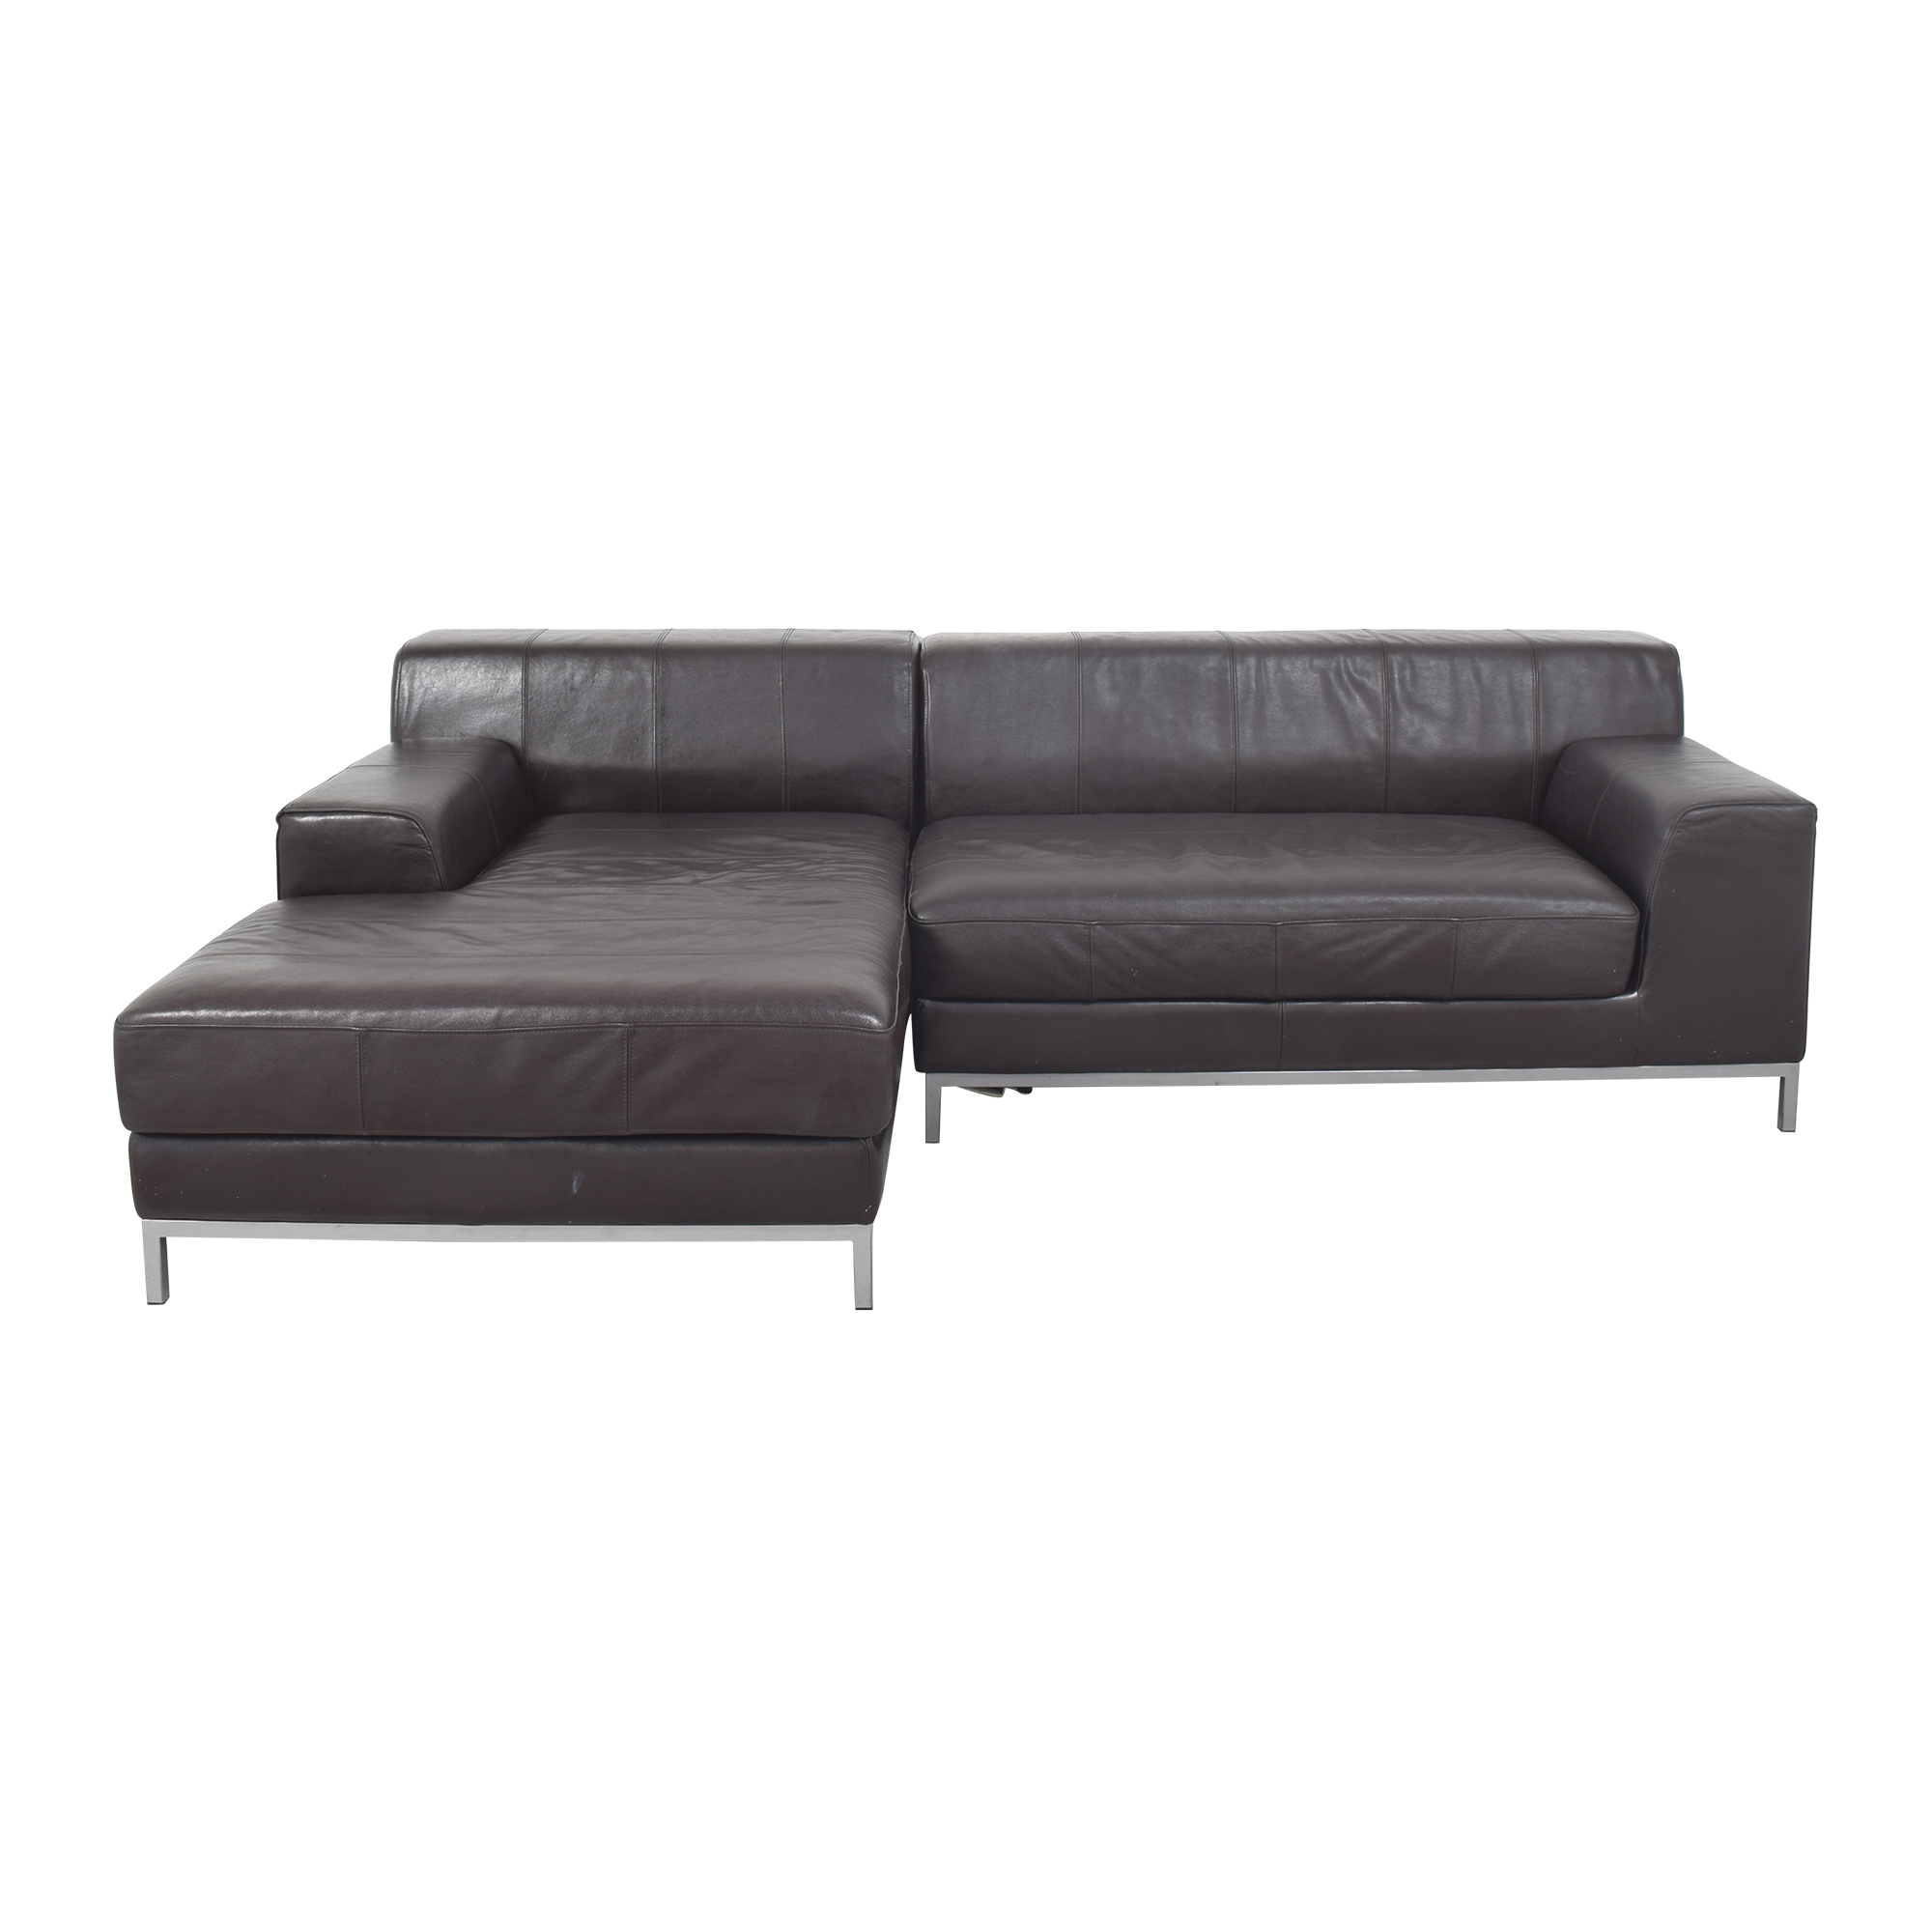 IKEA Two Piece Chaise Sectional Sofa sale